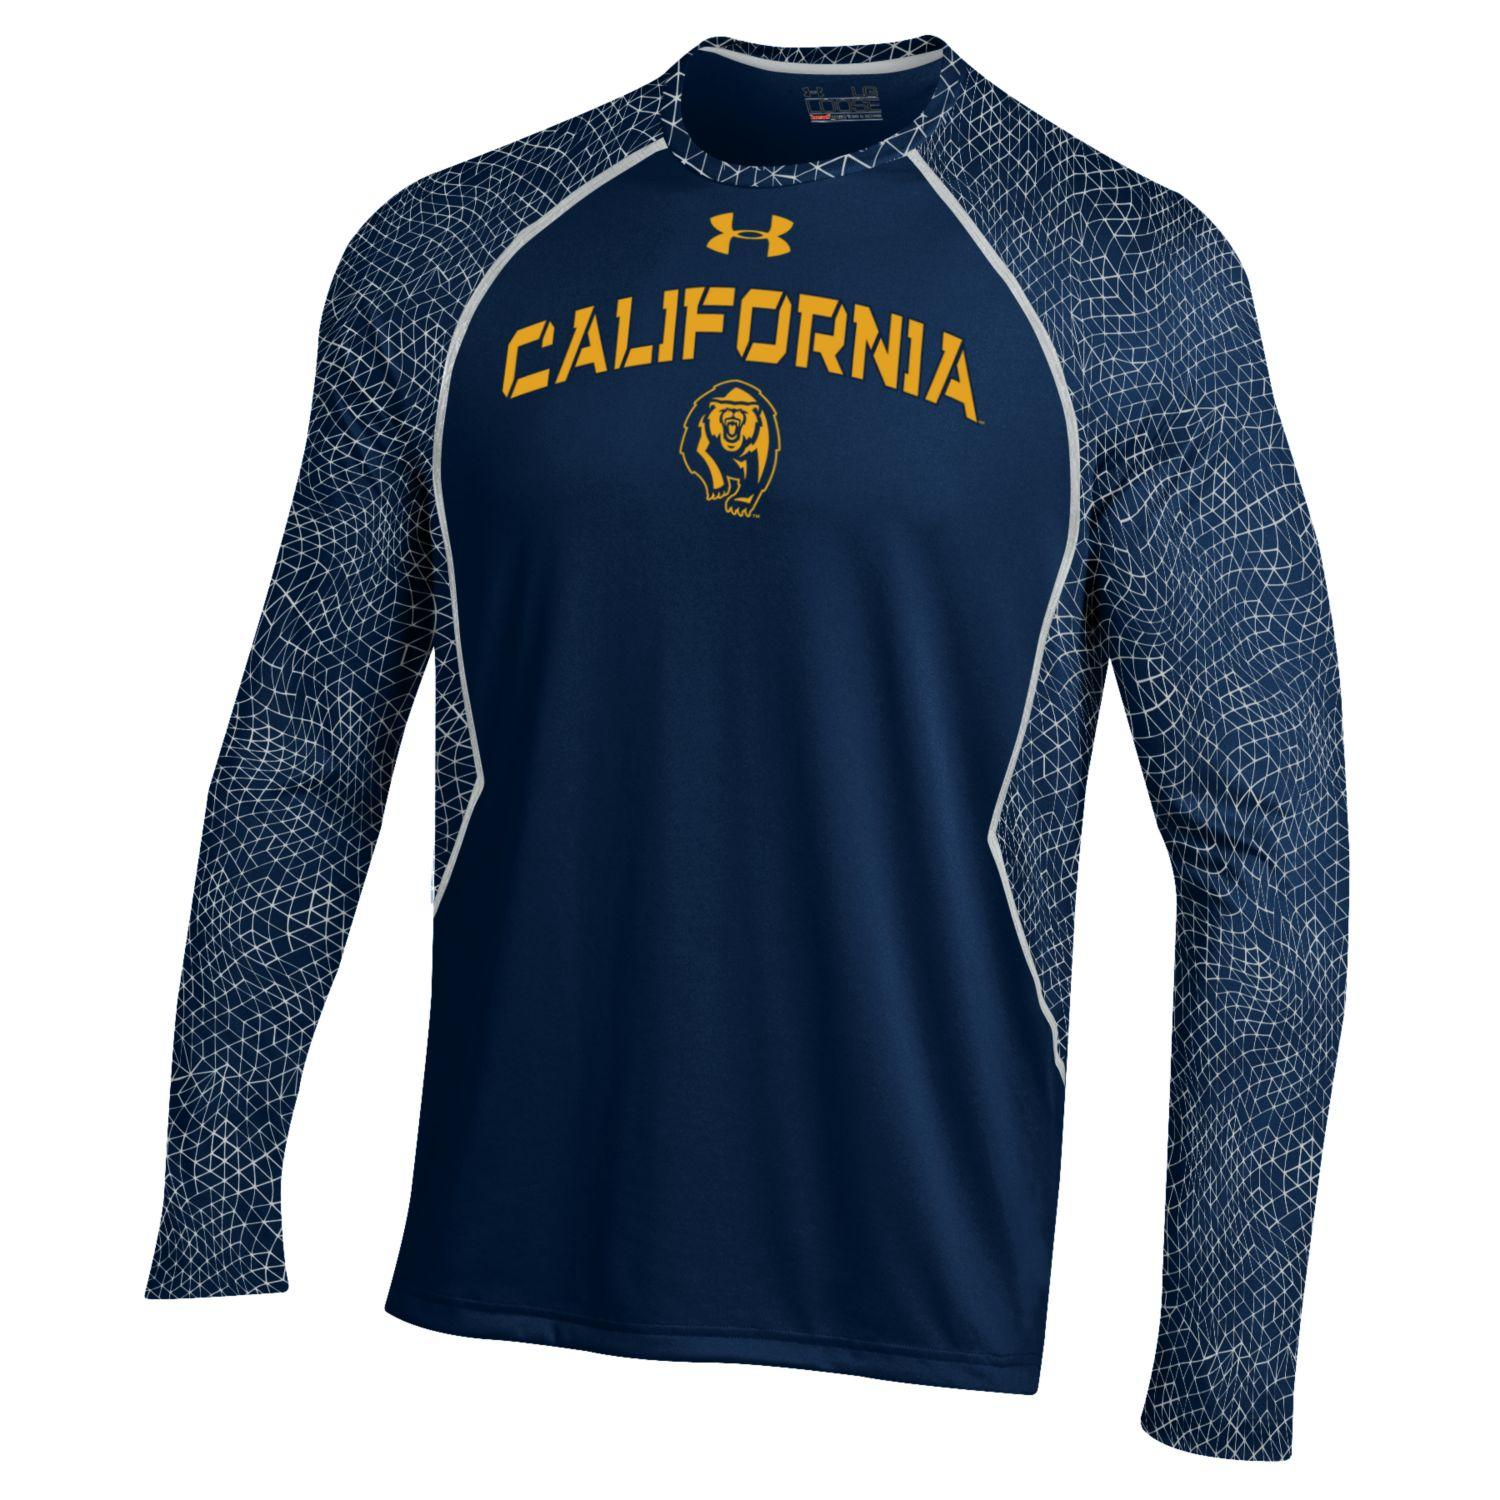 University of California Berkeley Under Armour Apex Print Tee